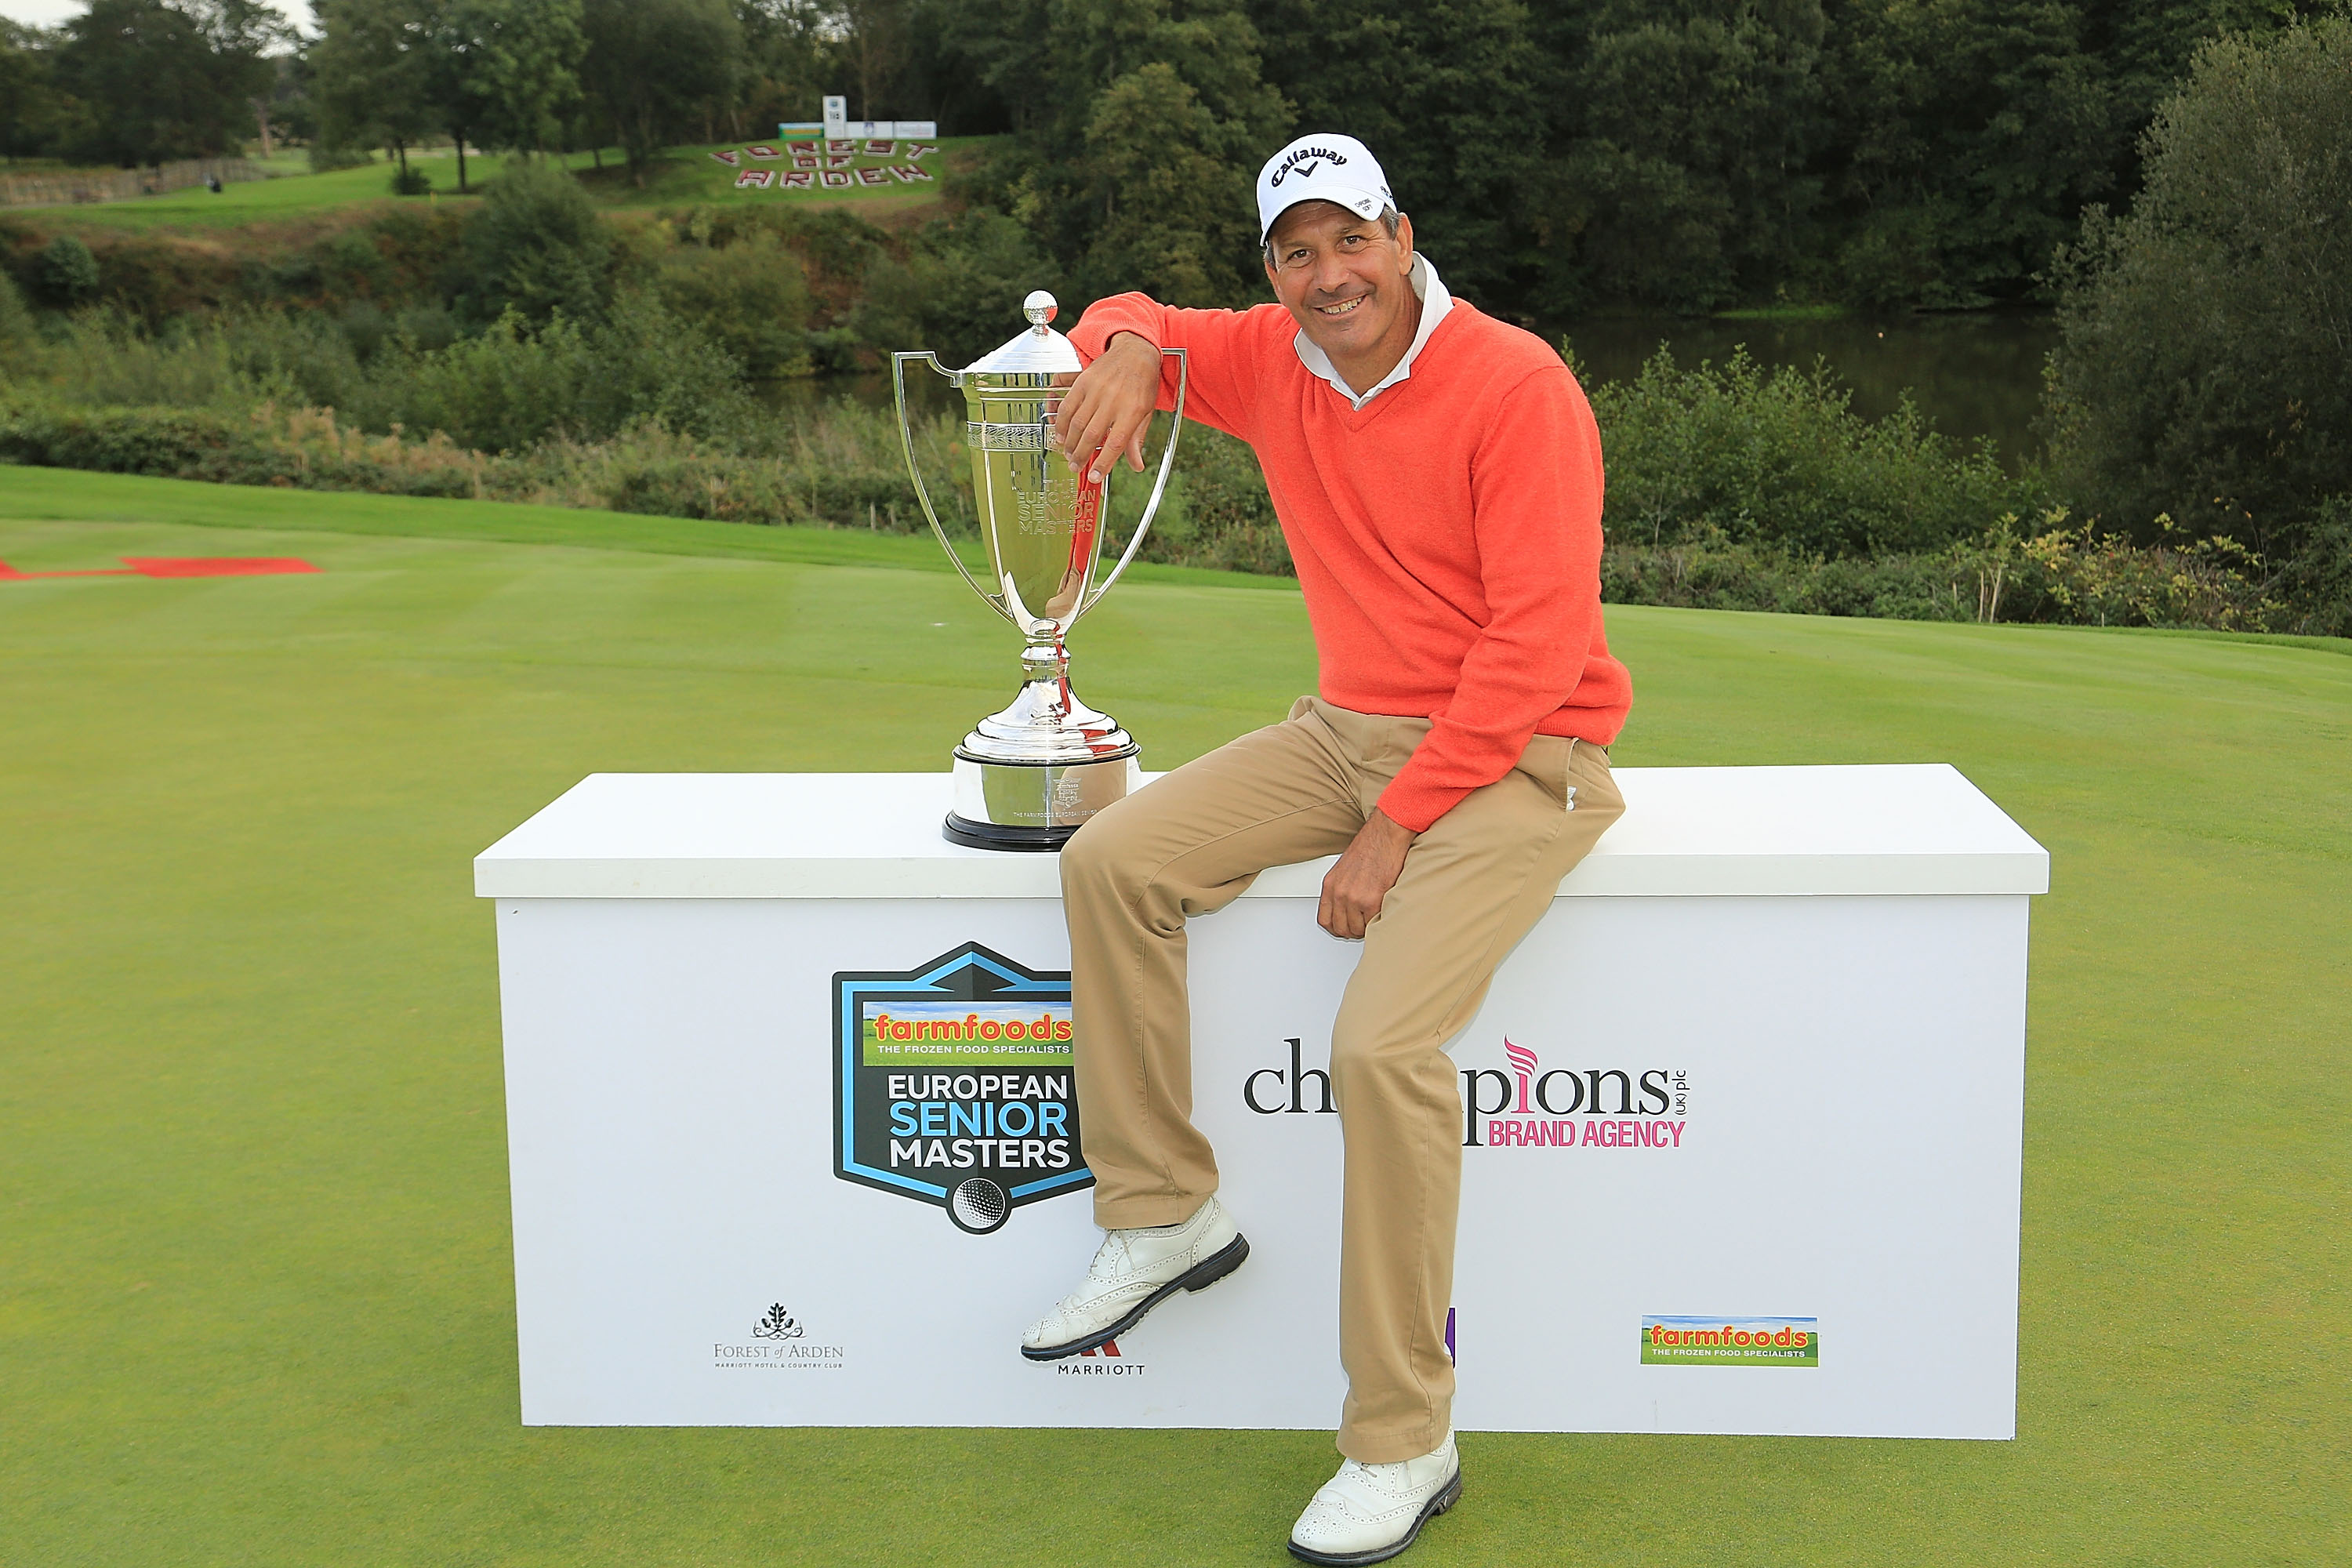 Santiago Luna stayed in control throughout the final round as he marched to victory at the Farmfoods European Senior Masters